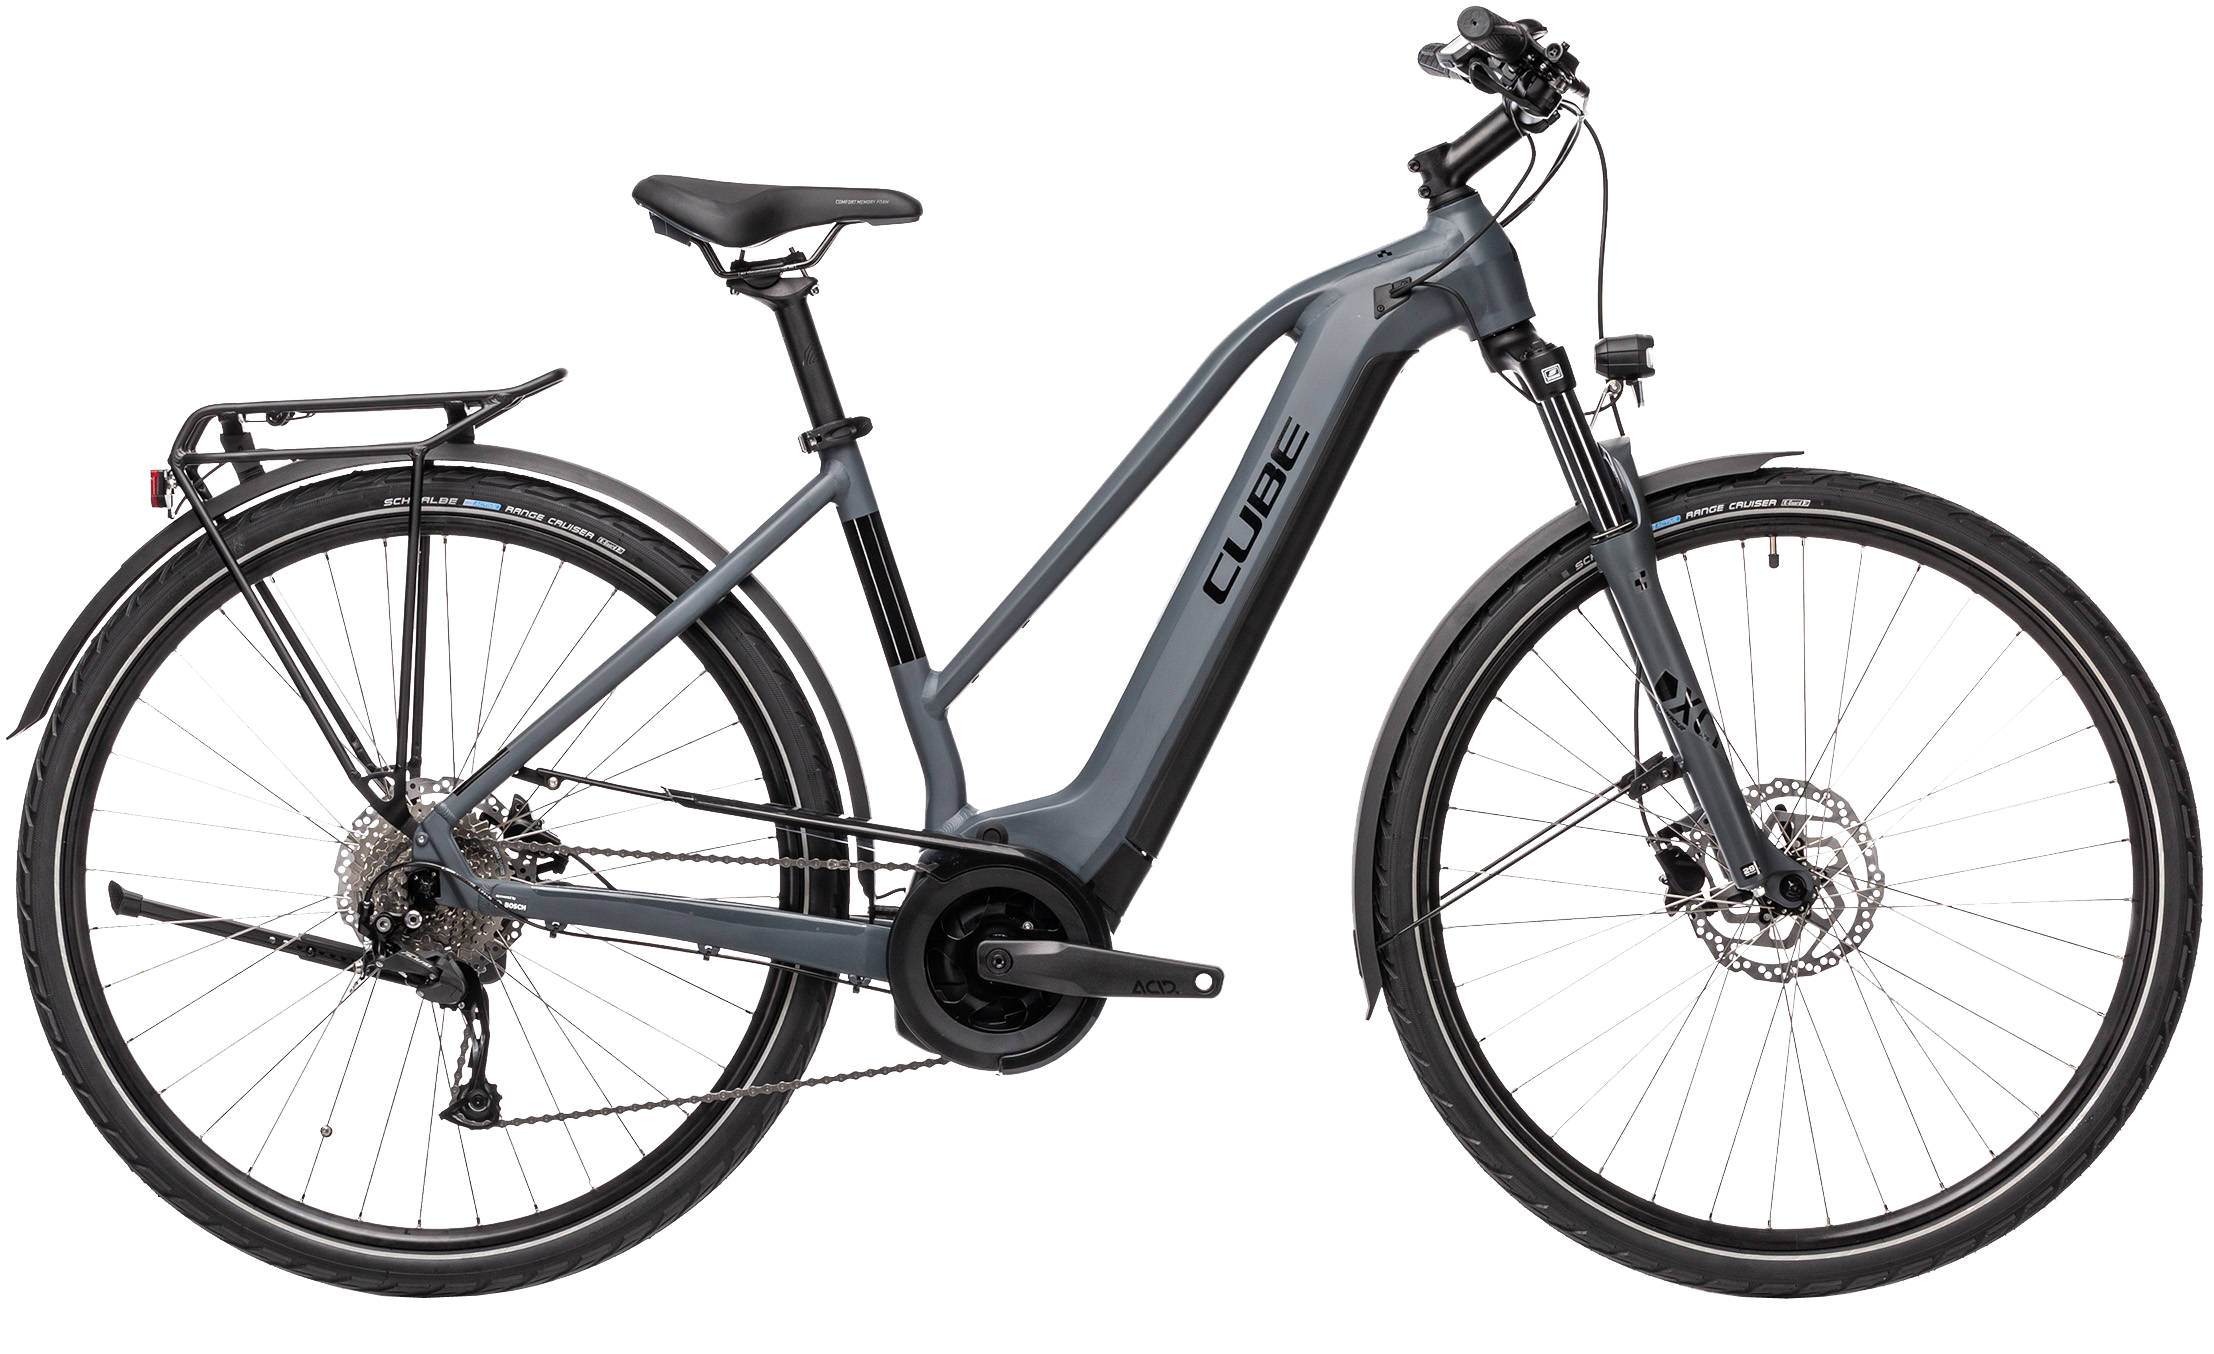 https://w8w5m3f8.stackpathcdn.com/20265/vtc-electrique-touring-hybrid-one-400-500-625wh-cadre-mixte.jpg